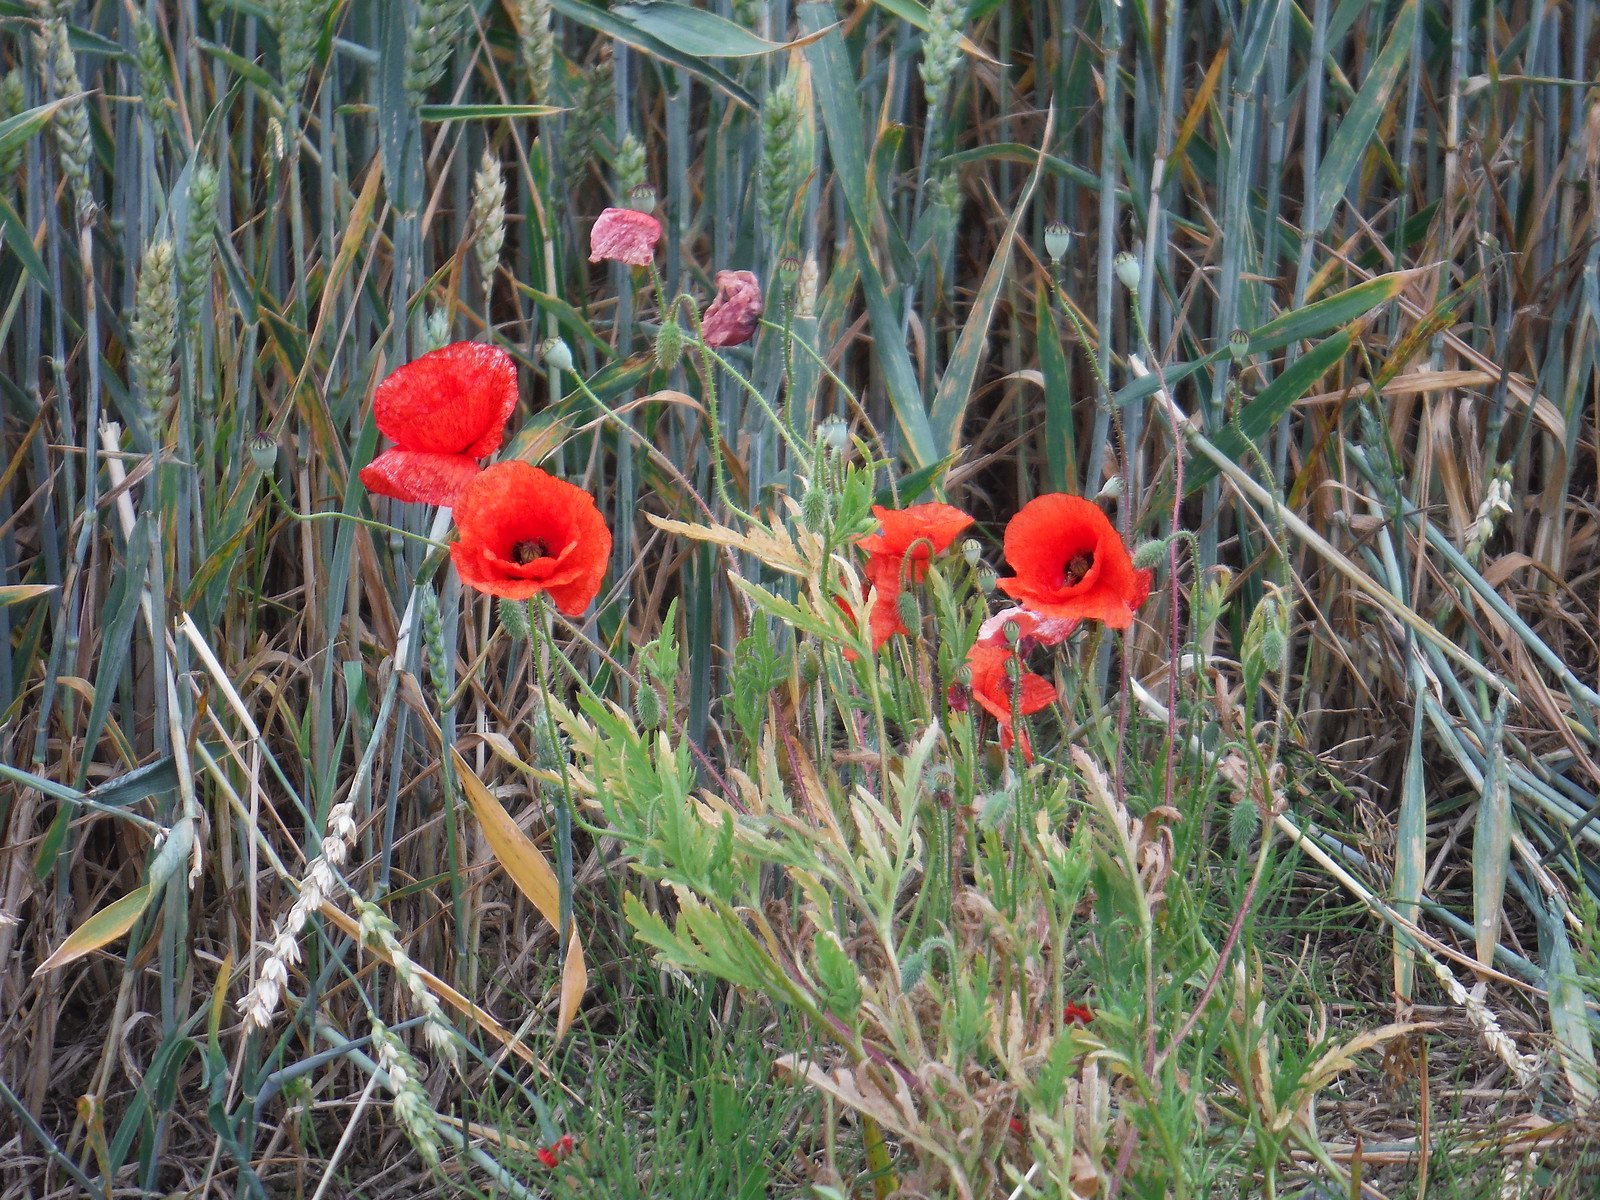 Poppies fieldside, Sacombs Ash SWC Walk 210 - Sawbridgeworth to Bishop's Stortfort (via Henry Moore Foundation)